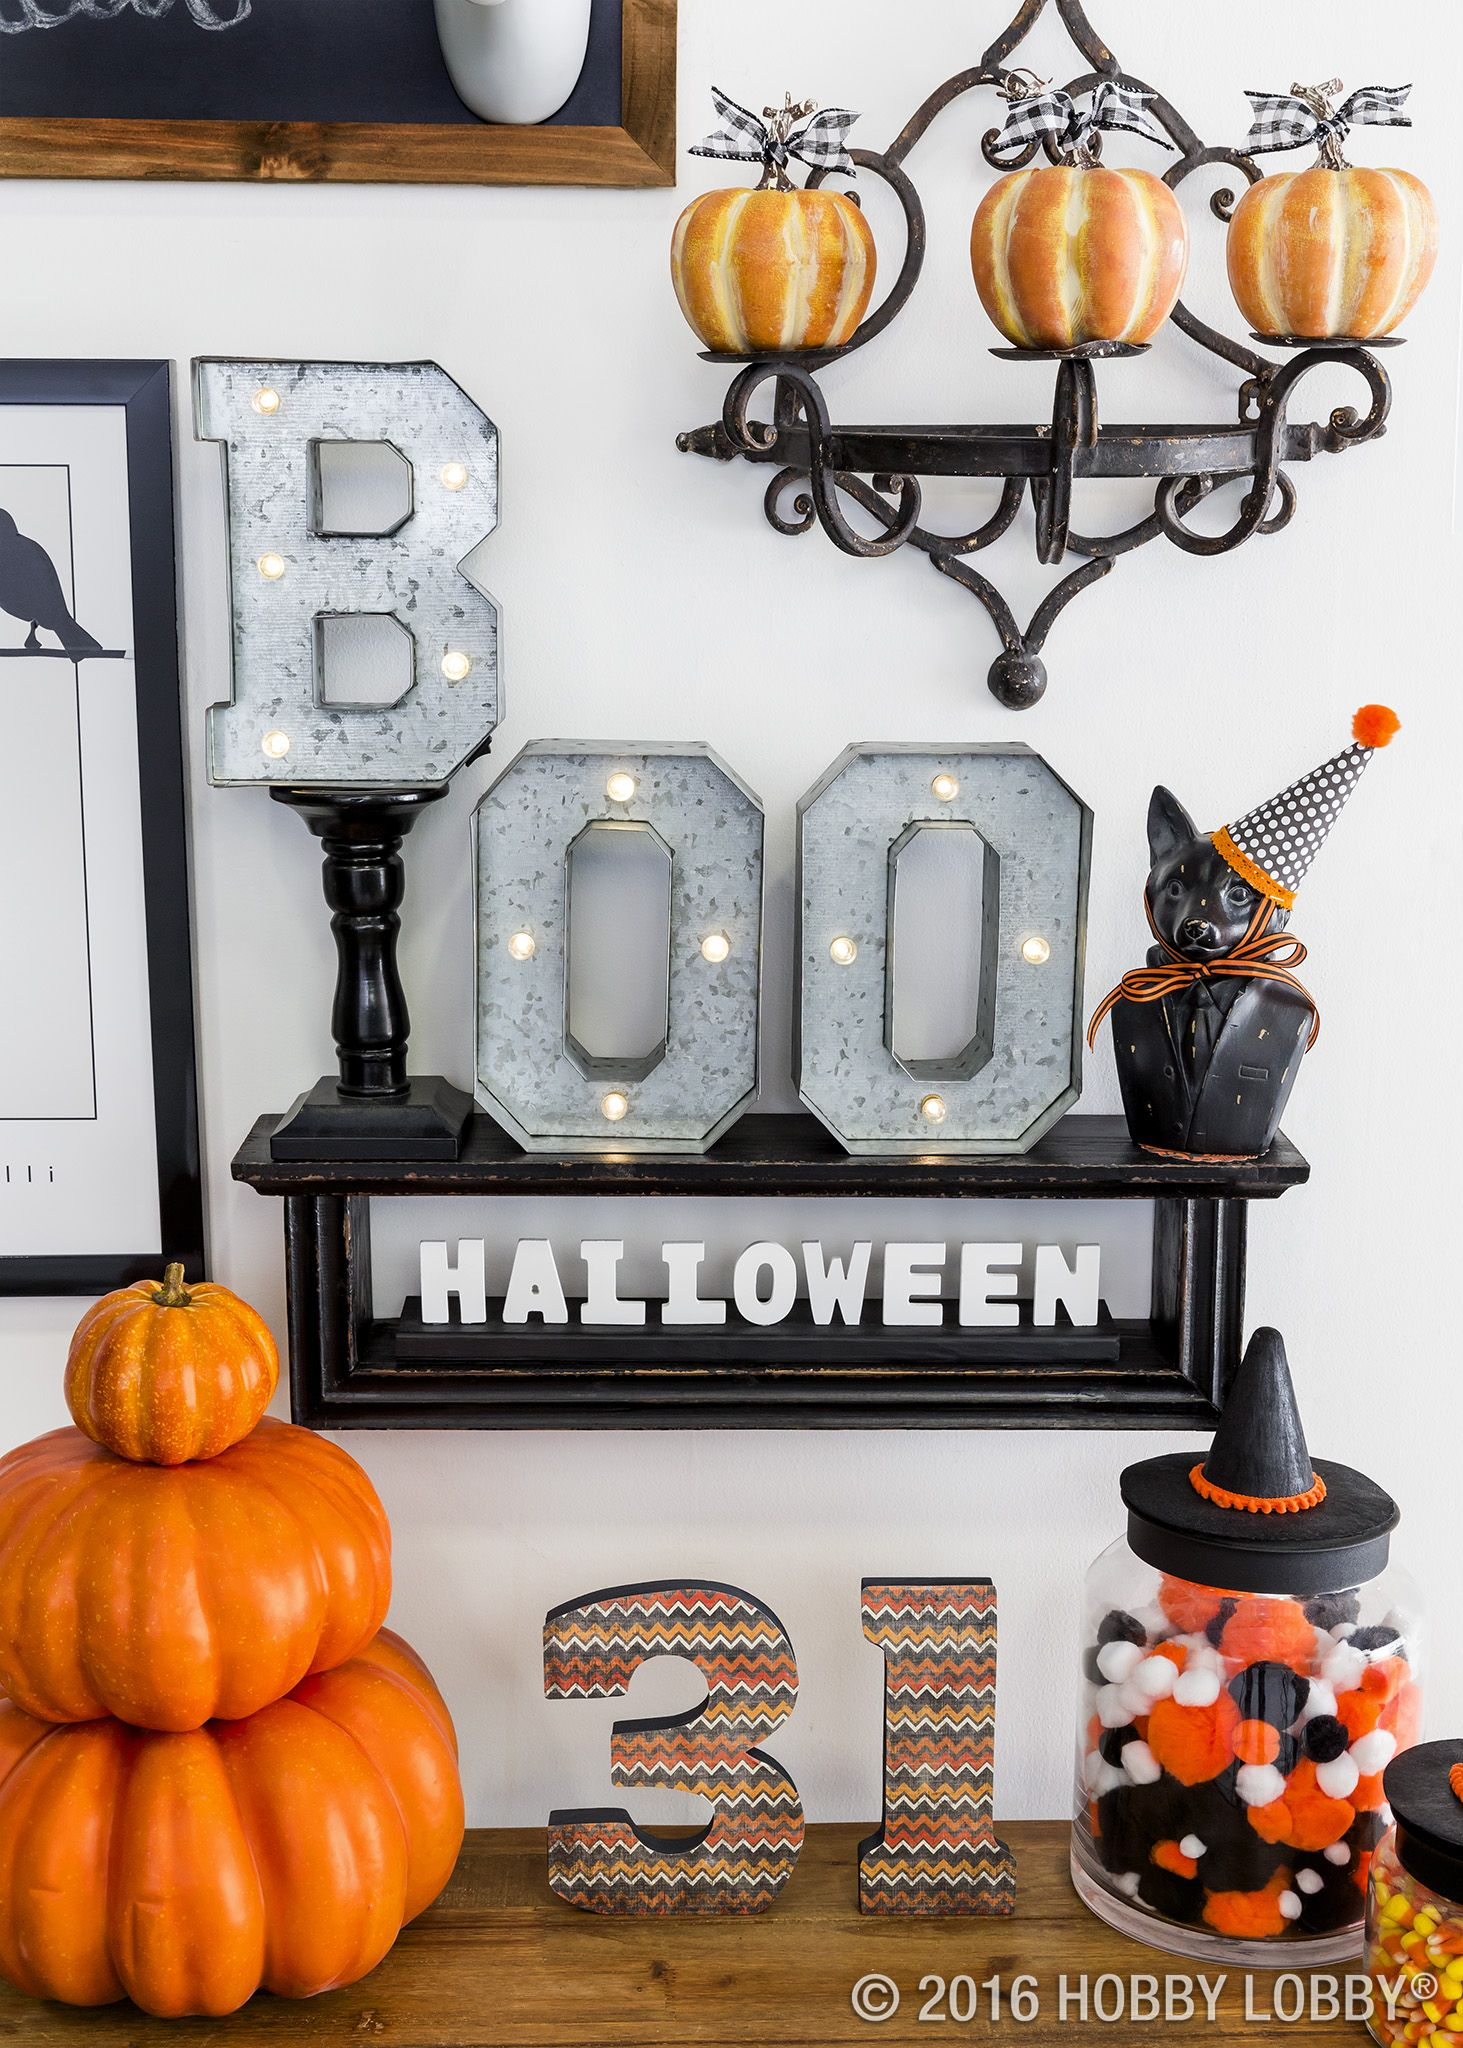 Take your Halloween decor to the next level! Just add a bit of - Hobby Lobby Halloween Decorations